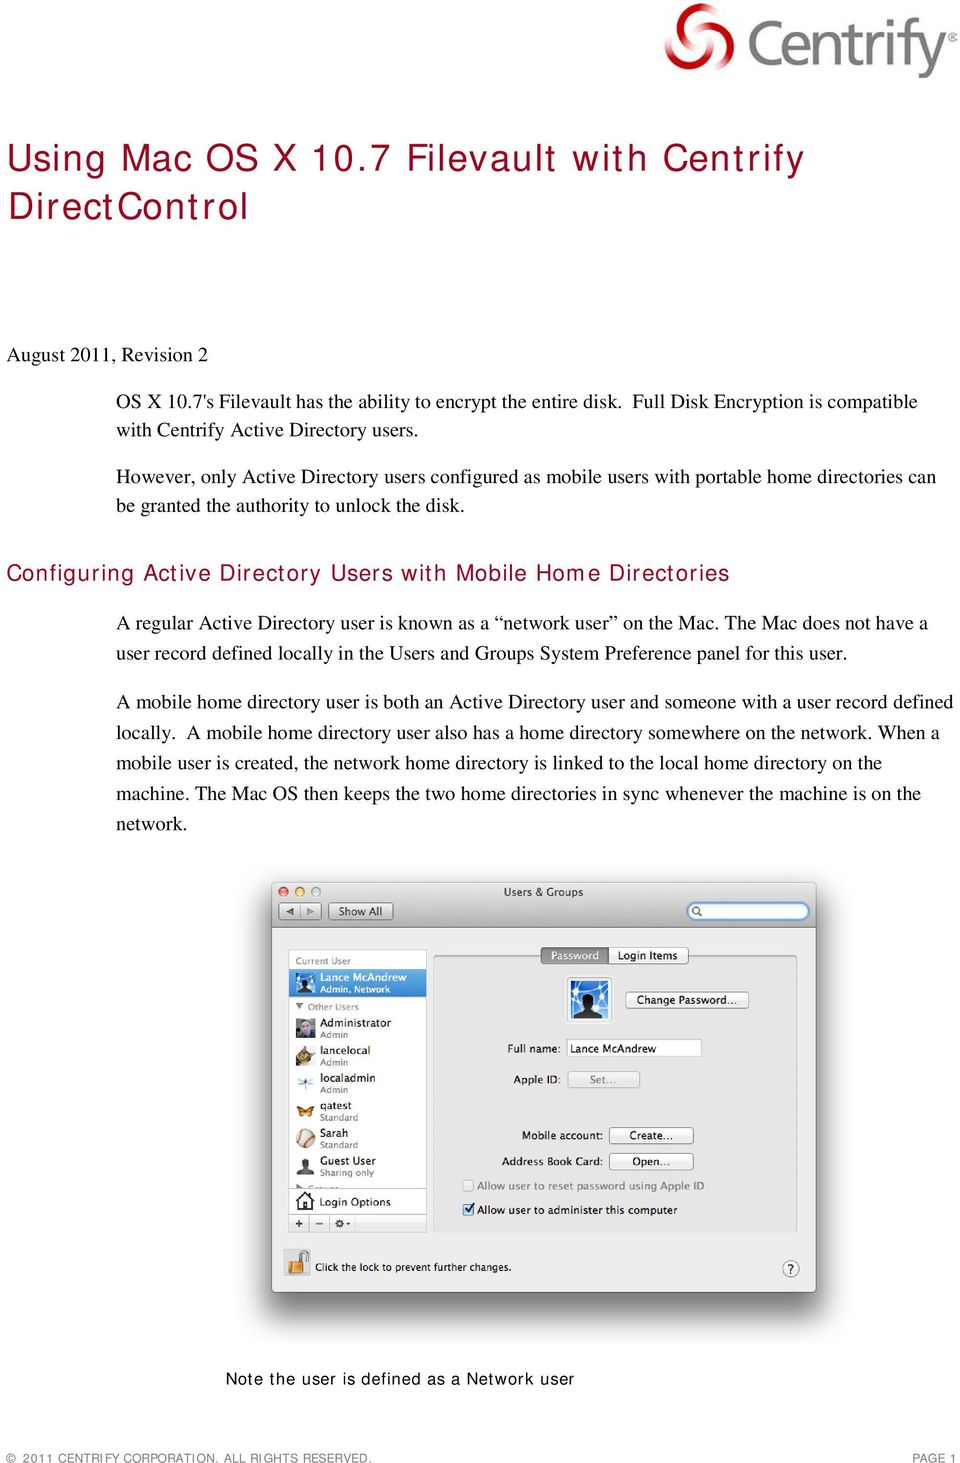 However, only Active Directory users configured as mobile users with portable home directories can be granted the authority to unlock the disk.